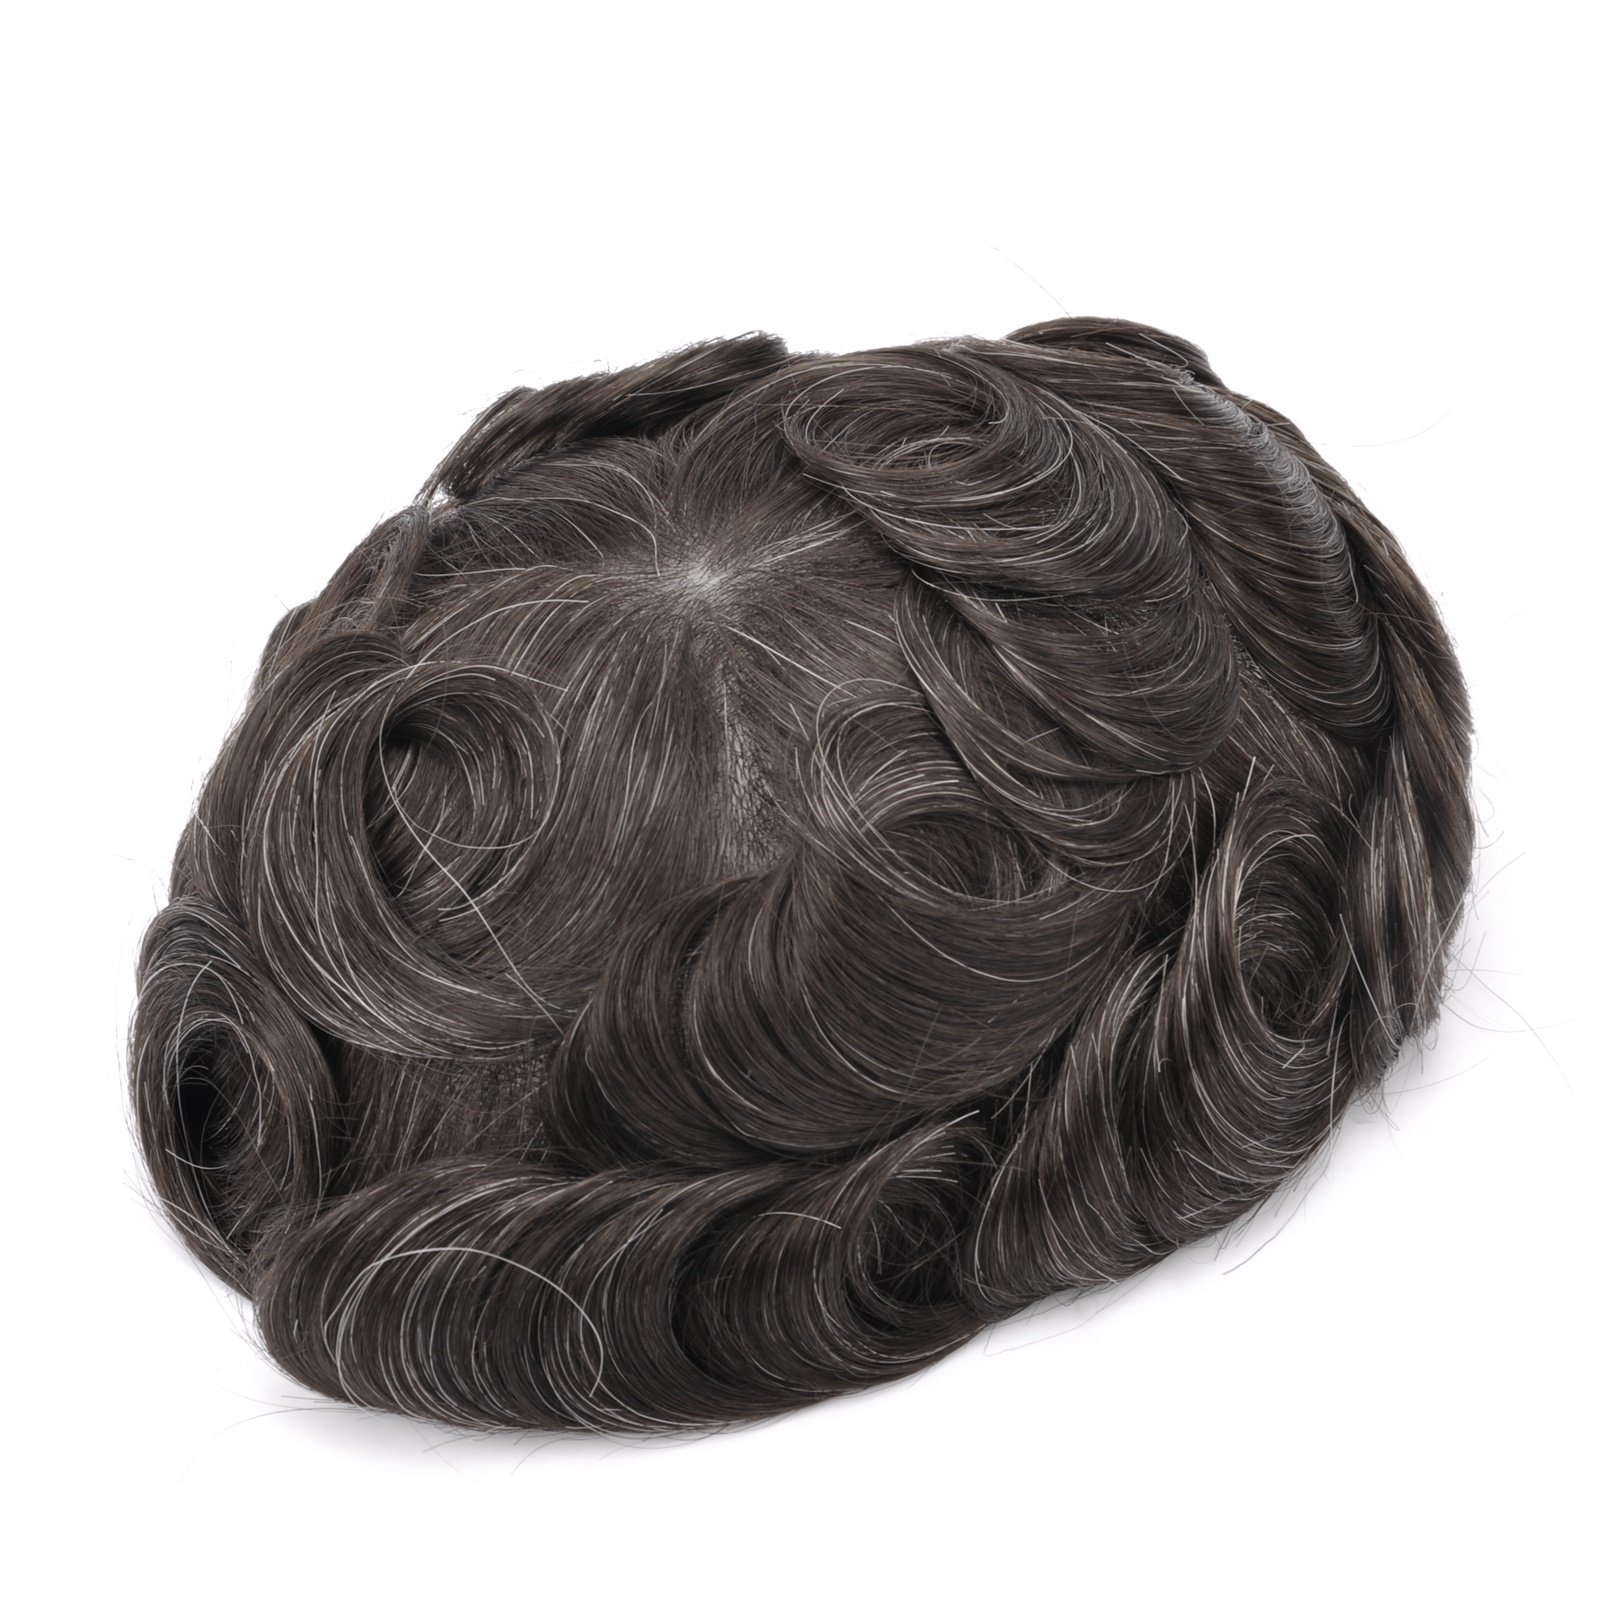 Mens Toupee Hairpiece Apollo Human Hair Systems 310#